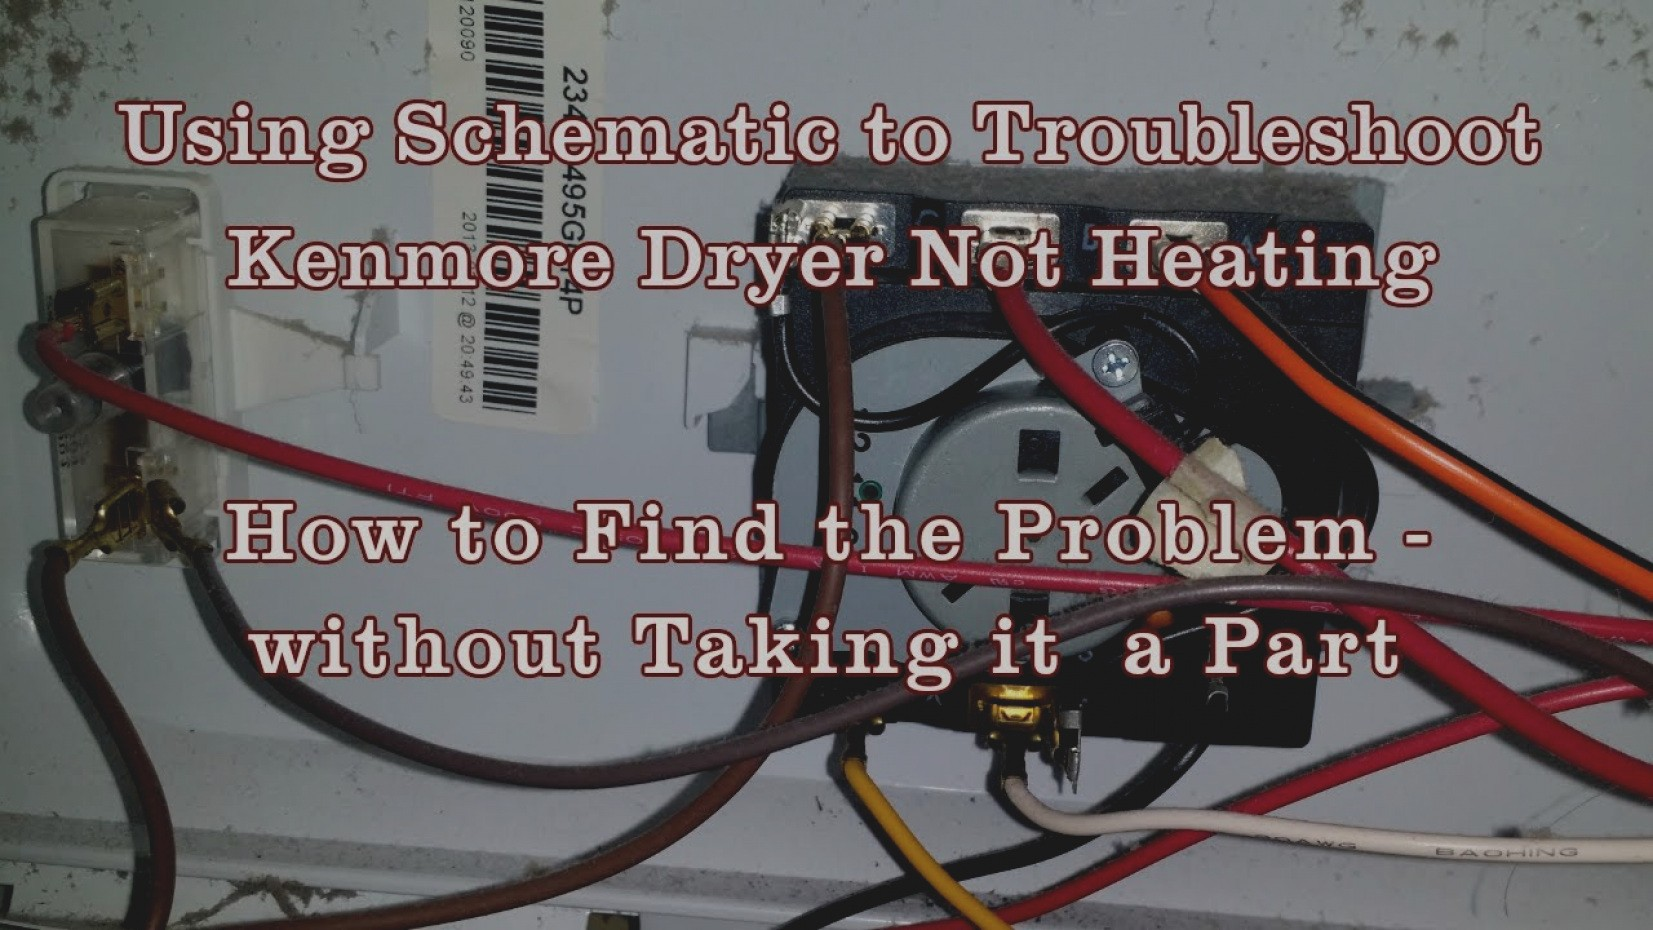 Whirlpool Dryer Plug Wiring Diagram | Wiring Diagram Image on whirlpool dryer diagram, kenmore wire diagrams, kenmore dryer troubleshooting, kenmore microwave diagram, dryer wire diagram, kenmore dryer heating element, kenmore 90 series dryer diagram, kenmore dryer electrical wiring, kenmore appliance wiring diagrams, kenmore clothes dryer diagram, kenmore dryer repair, kenmore dryer timer, kenmore dryer wire, kenmore dryer motor, sears kenmore dryer diagram, kenmore dryer spec sheet, kenmore washer model 110 schematic, kenmore front load stackable washer dryer, kenmore dryer won't start, magic chef stove wiring diagram,